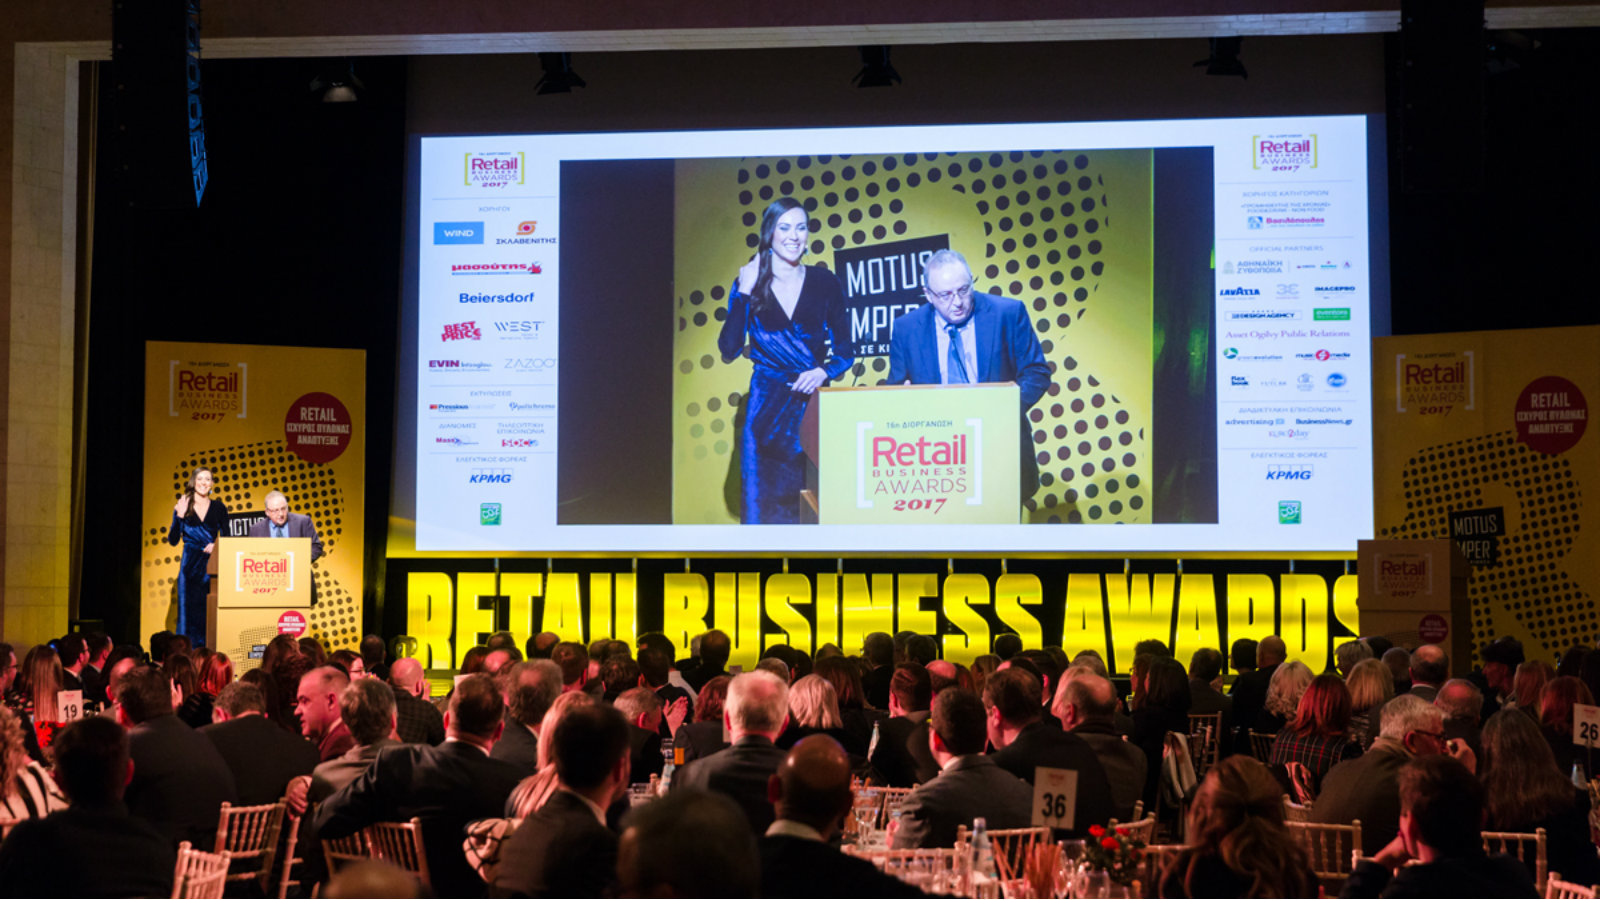 RetailBusiness-Awards-2017κ.jpg?mtime=20180214113915#asset:77604